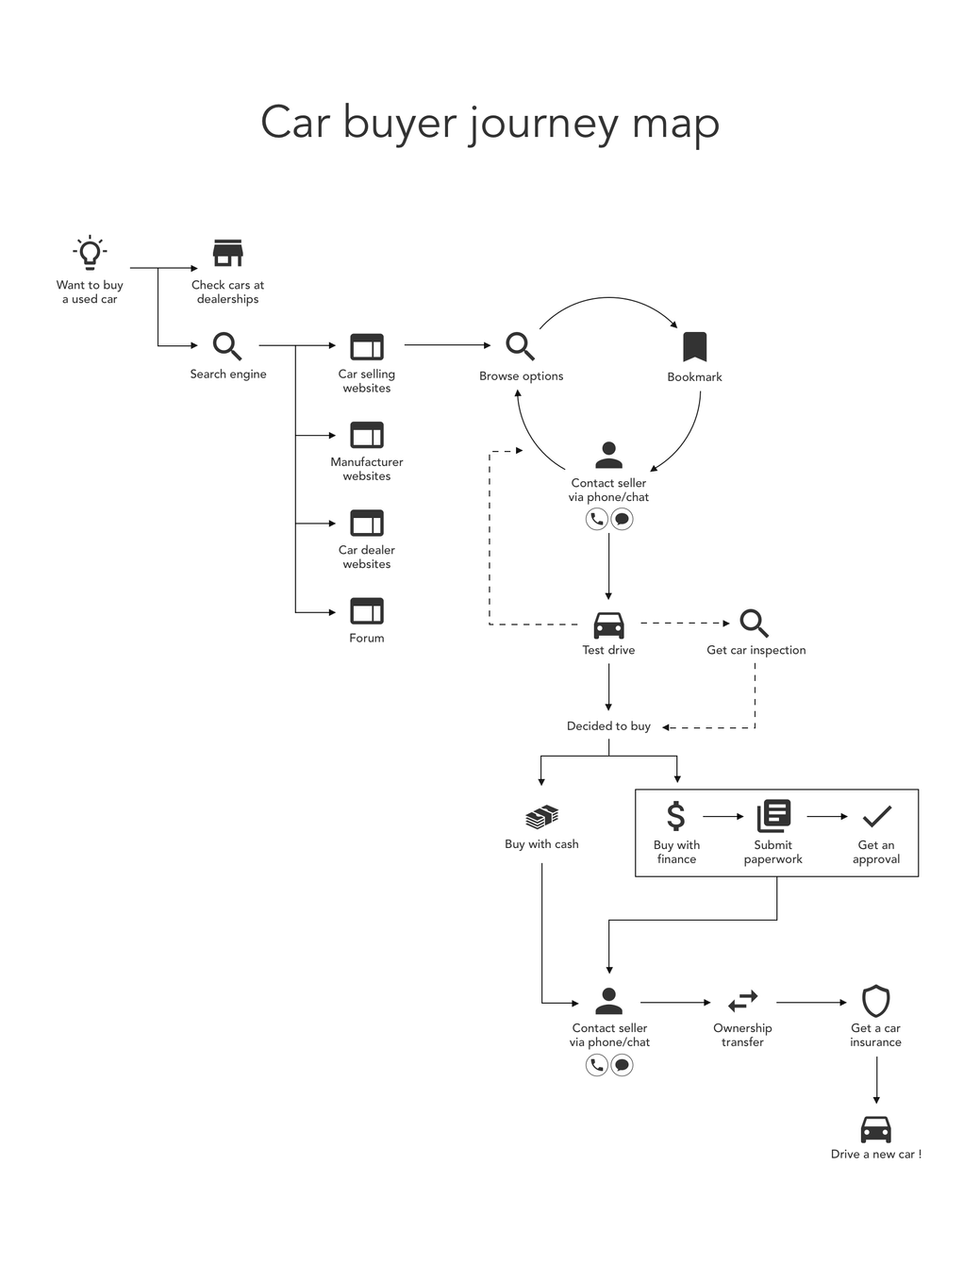 Car buyer journey map_S.png